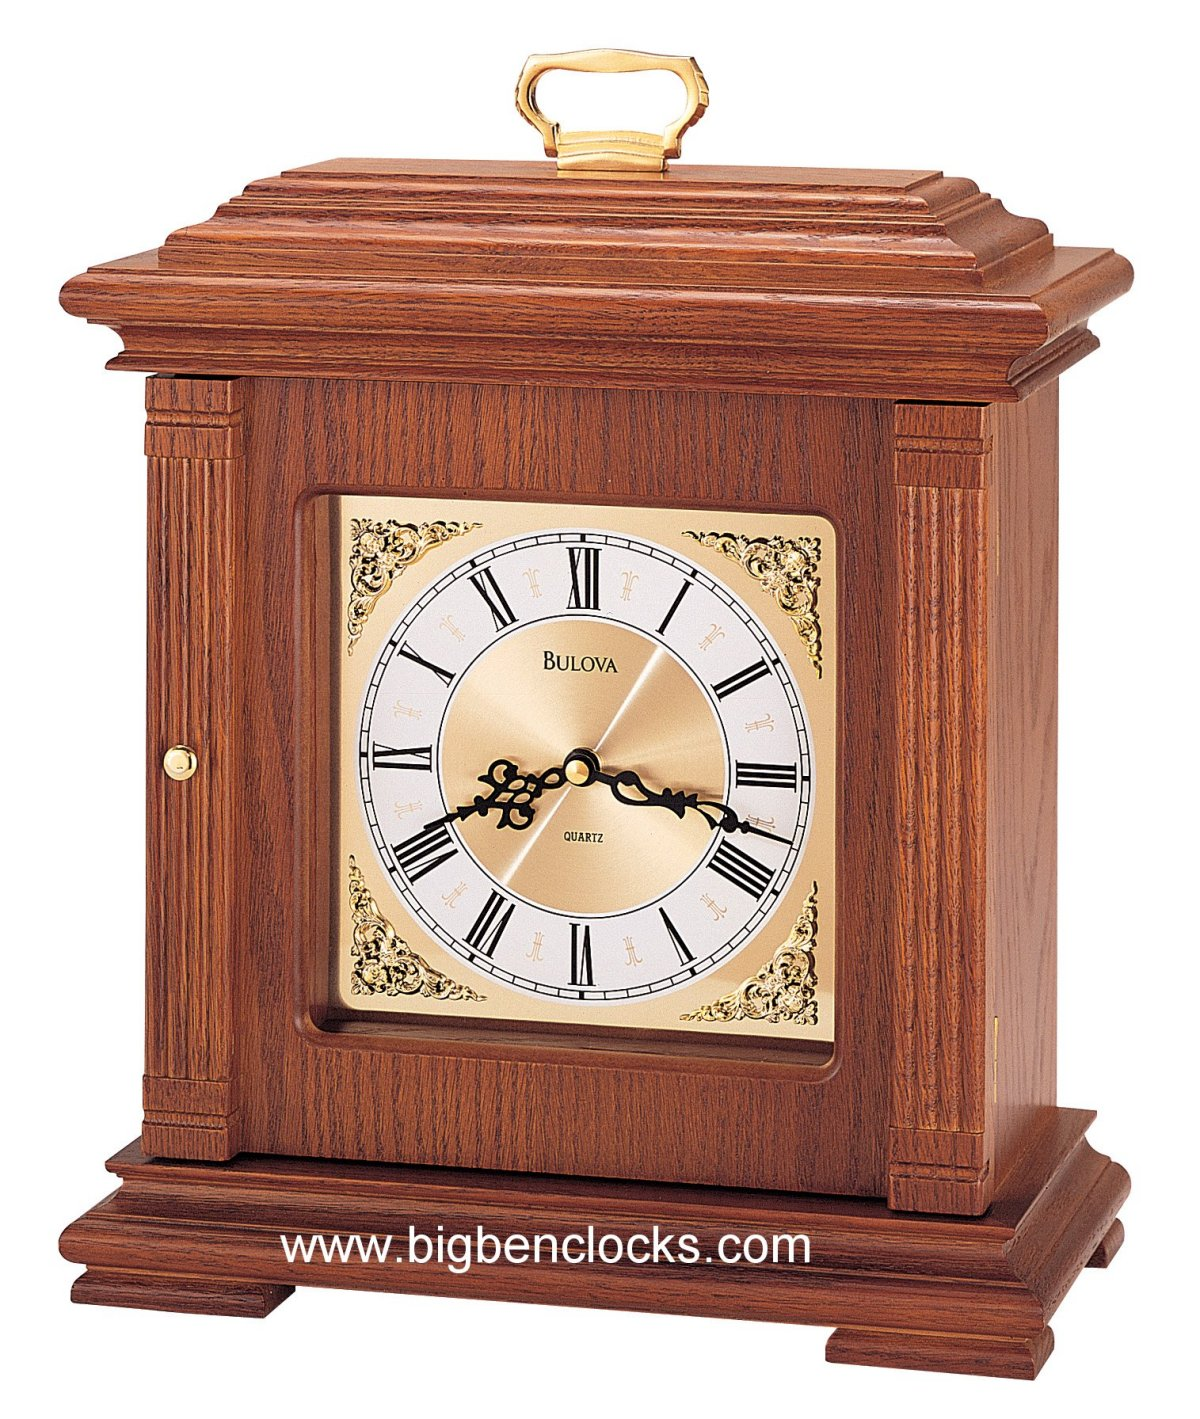 Mantal Clocks | Bulova Mantel Clock | Mantel Clocks